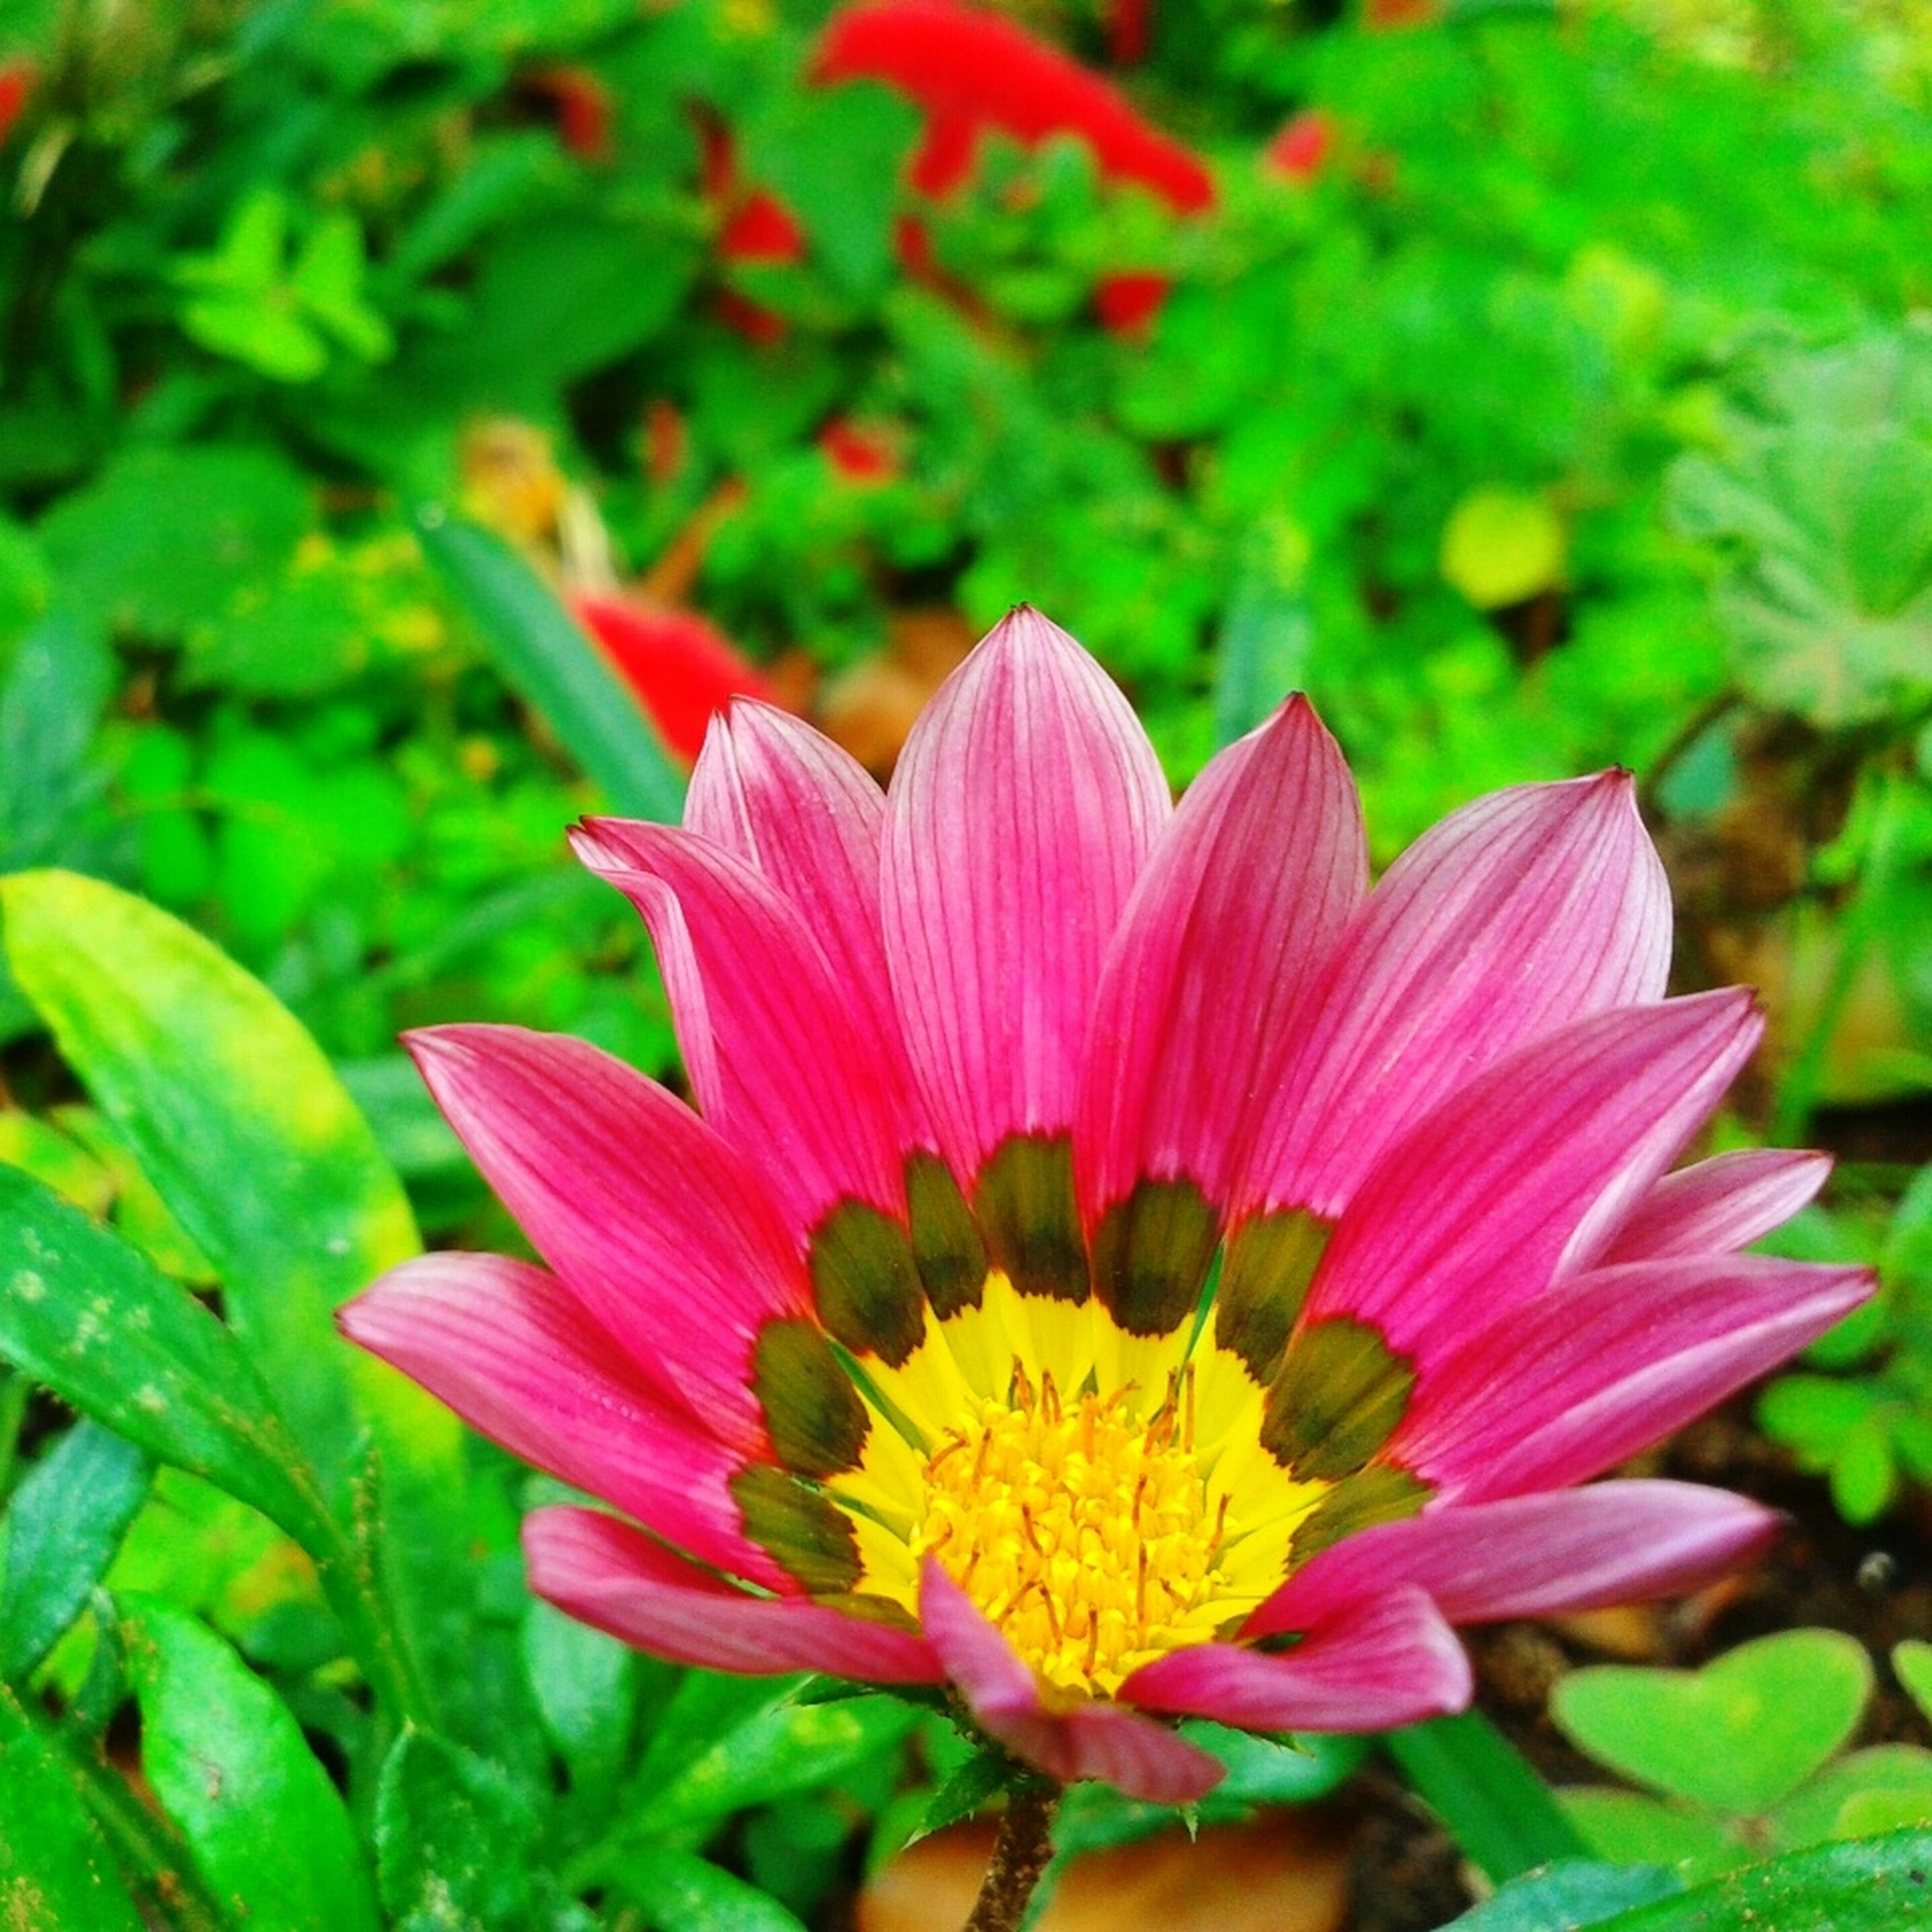 flower, petal, freshness, flower head, fragility, growth, beauty in nature, blooming, focus on foreground, close-up, pollen, single flower, nature, plant, pink color, in bloom, yellow, park - man made space, red, day